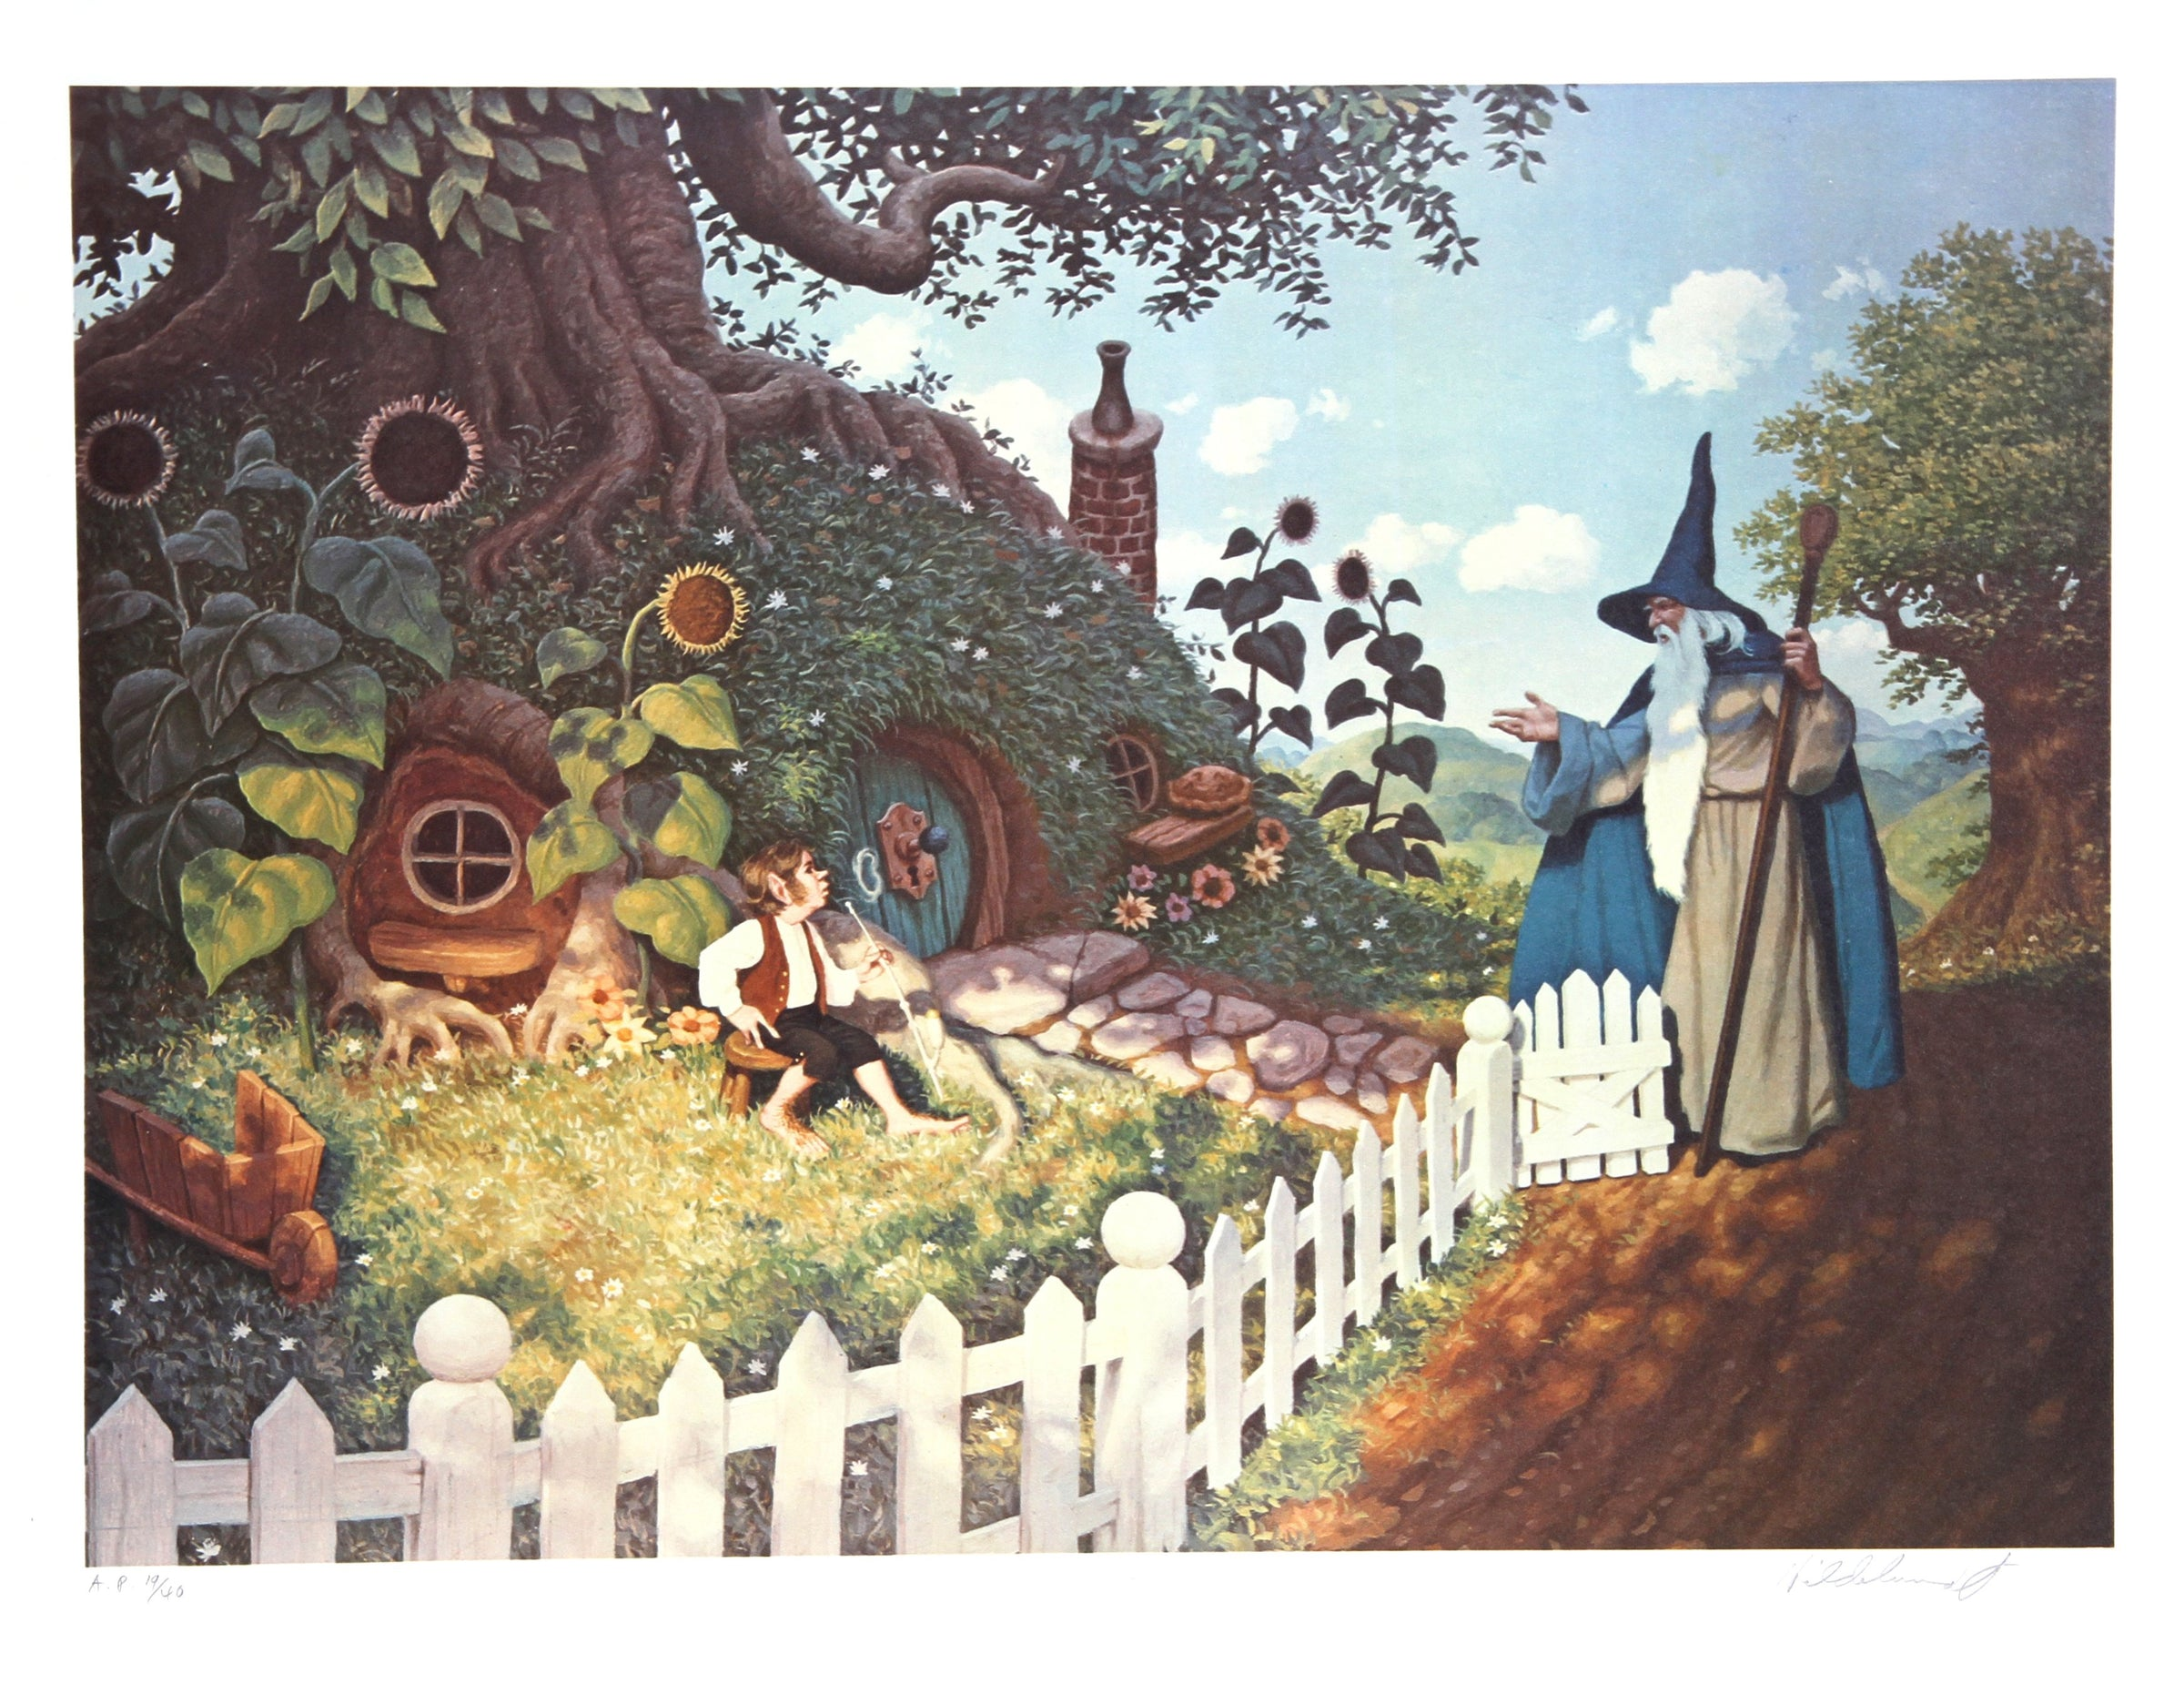 Brothers Hildebrandt, The Wizard's Visit Lithograph - RoGallery